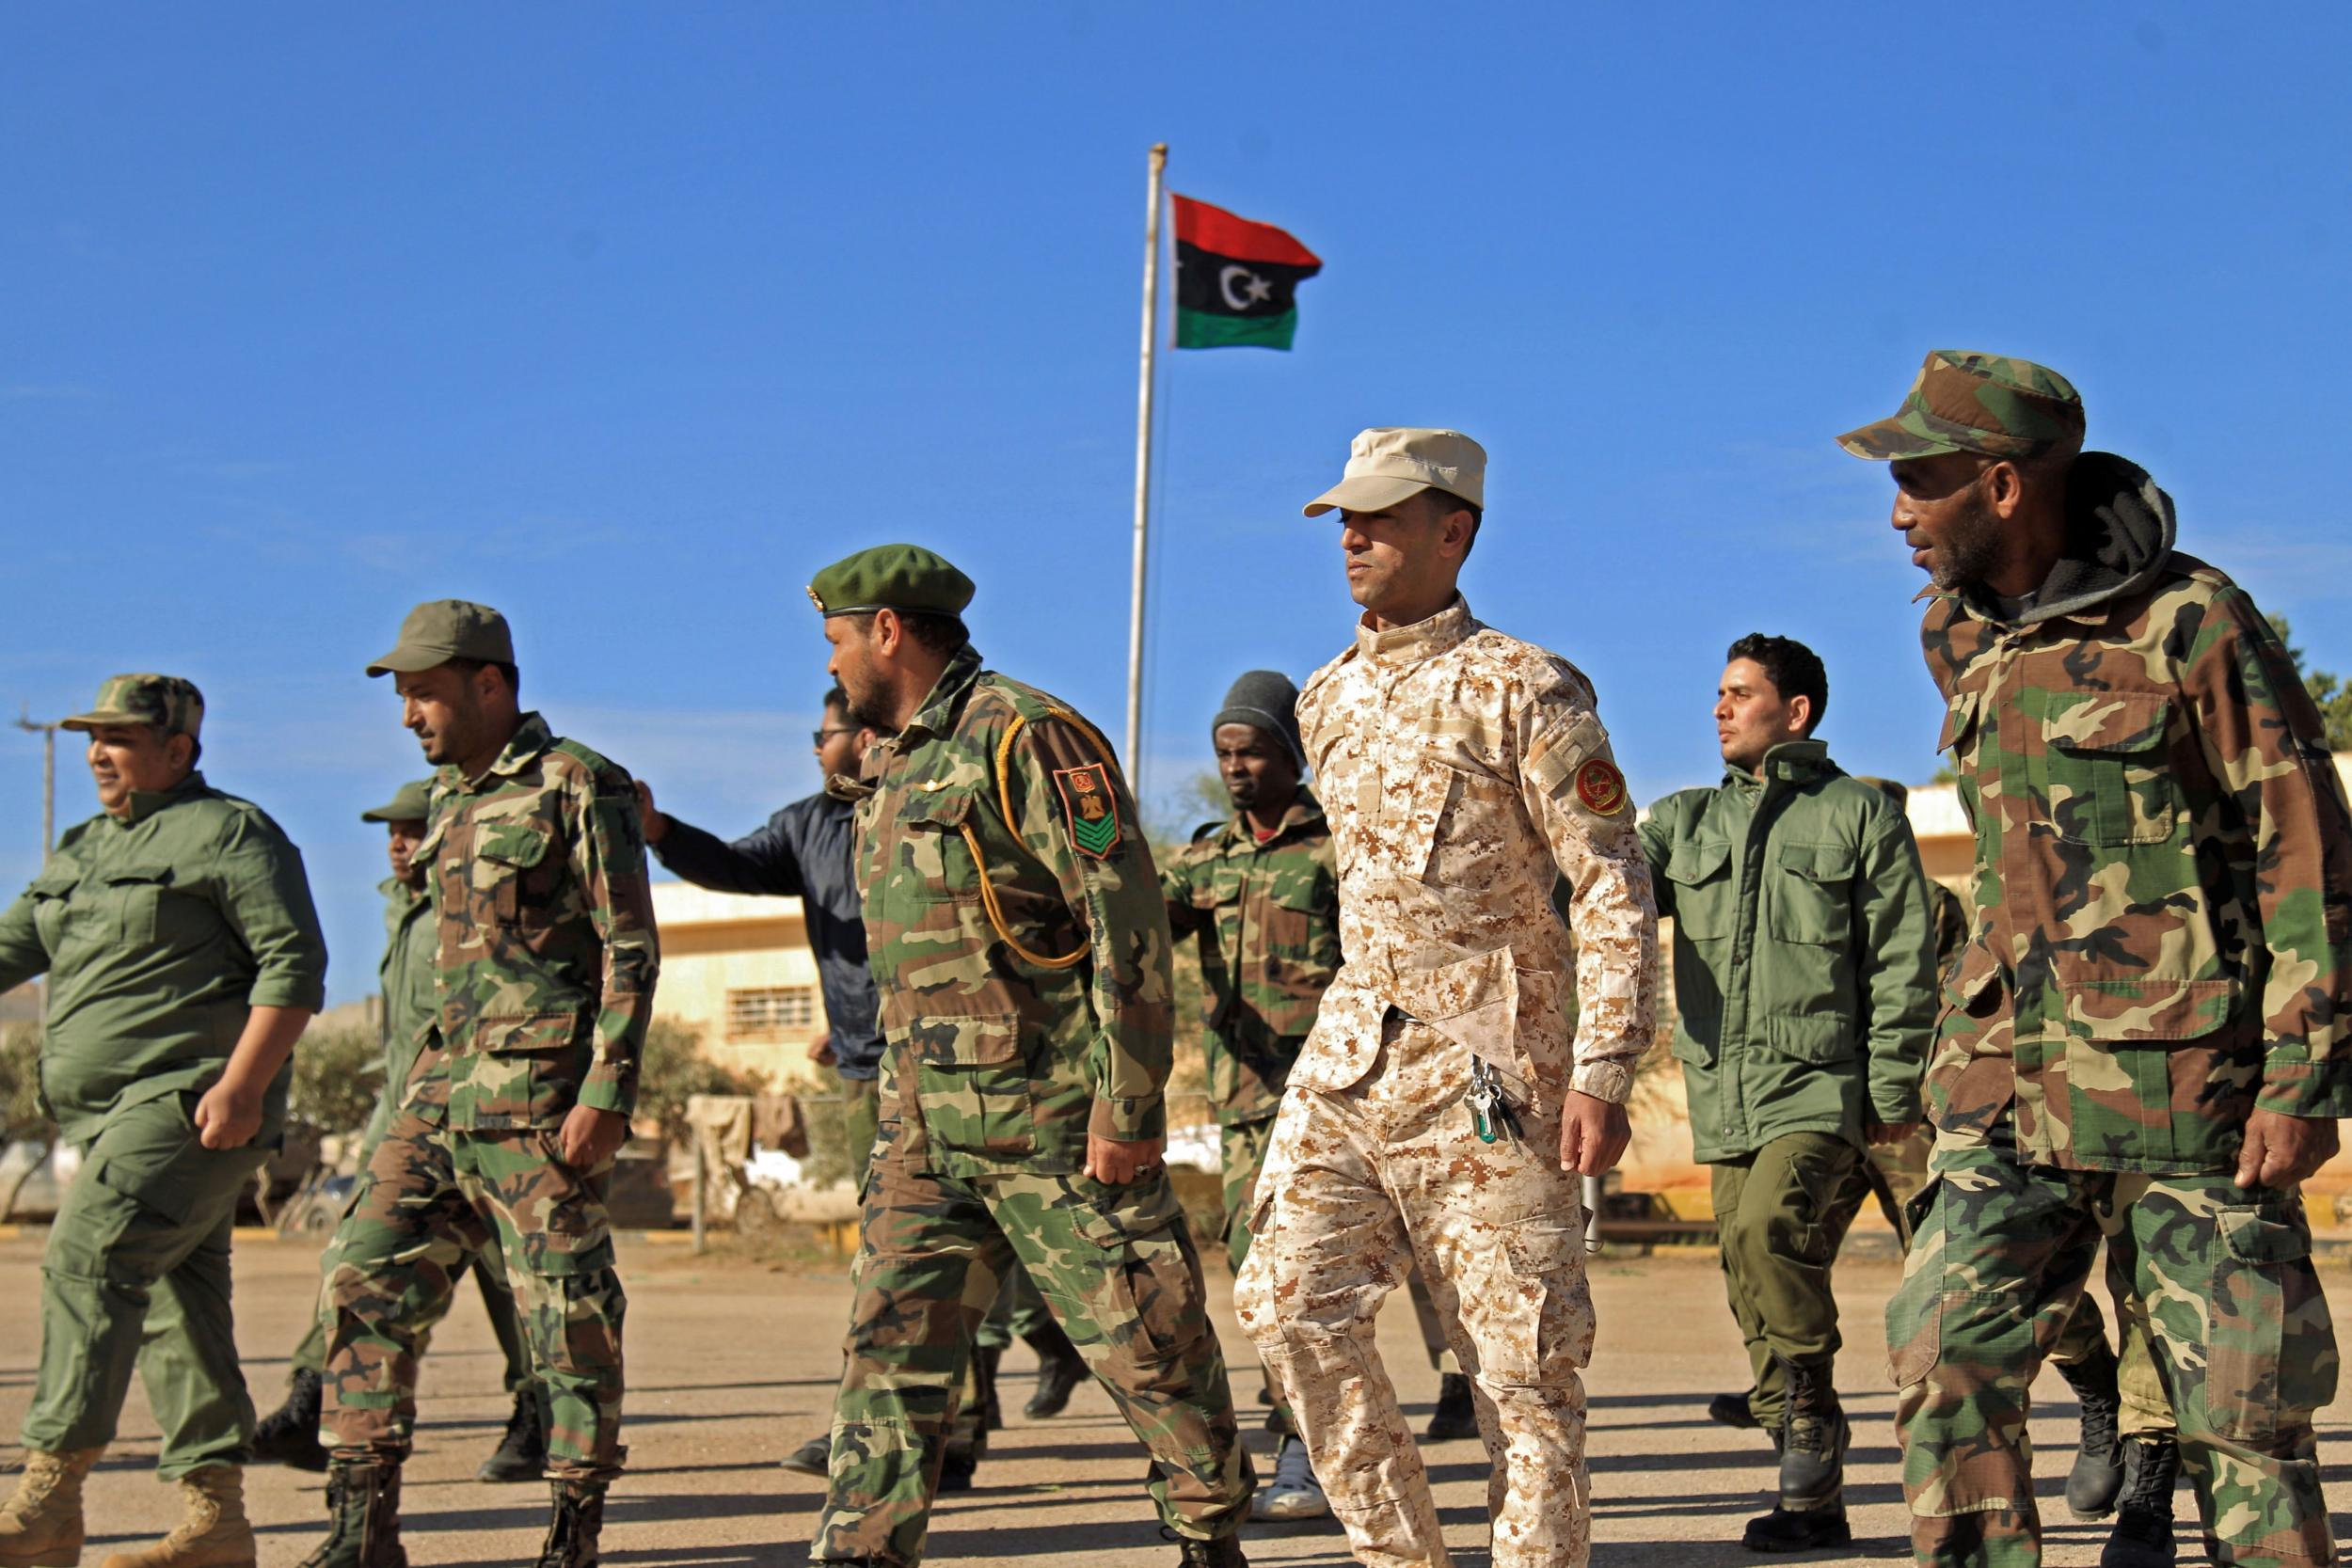 Syrian rebels reportedly part of Turkish contingent to be sent to defend Libya's government in Tripoli